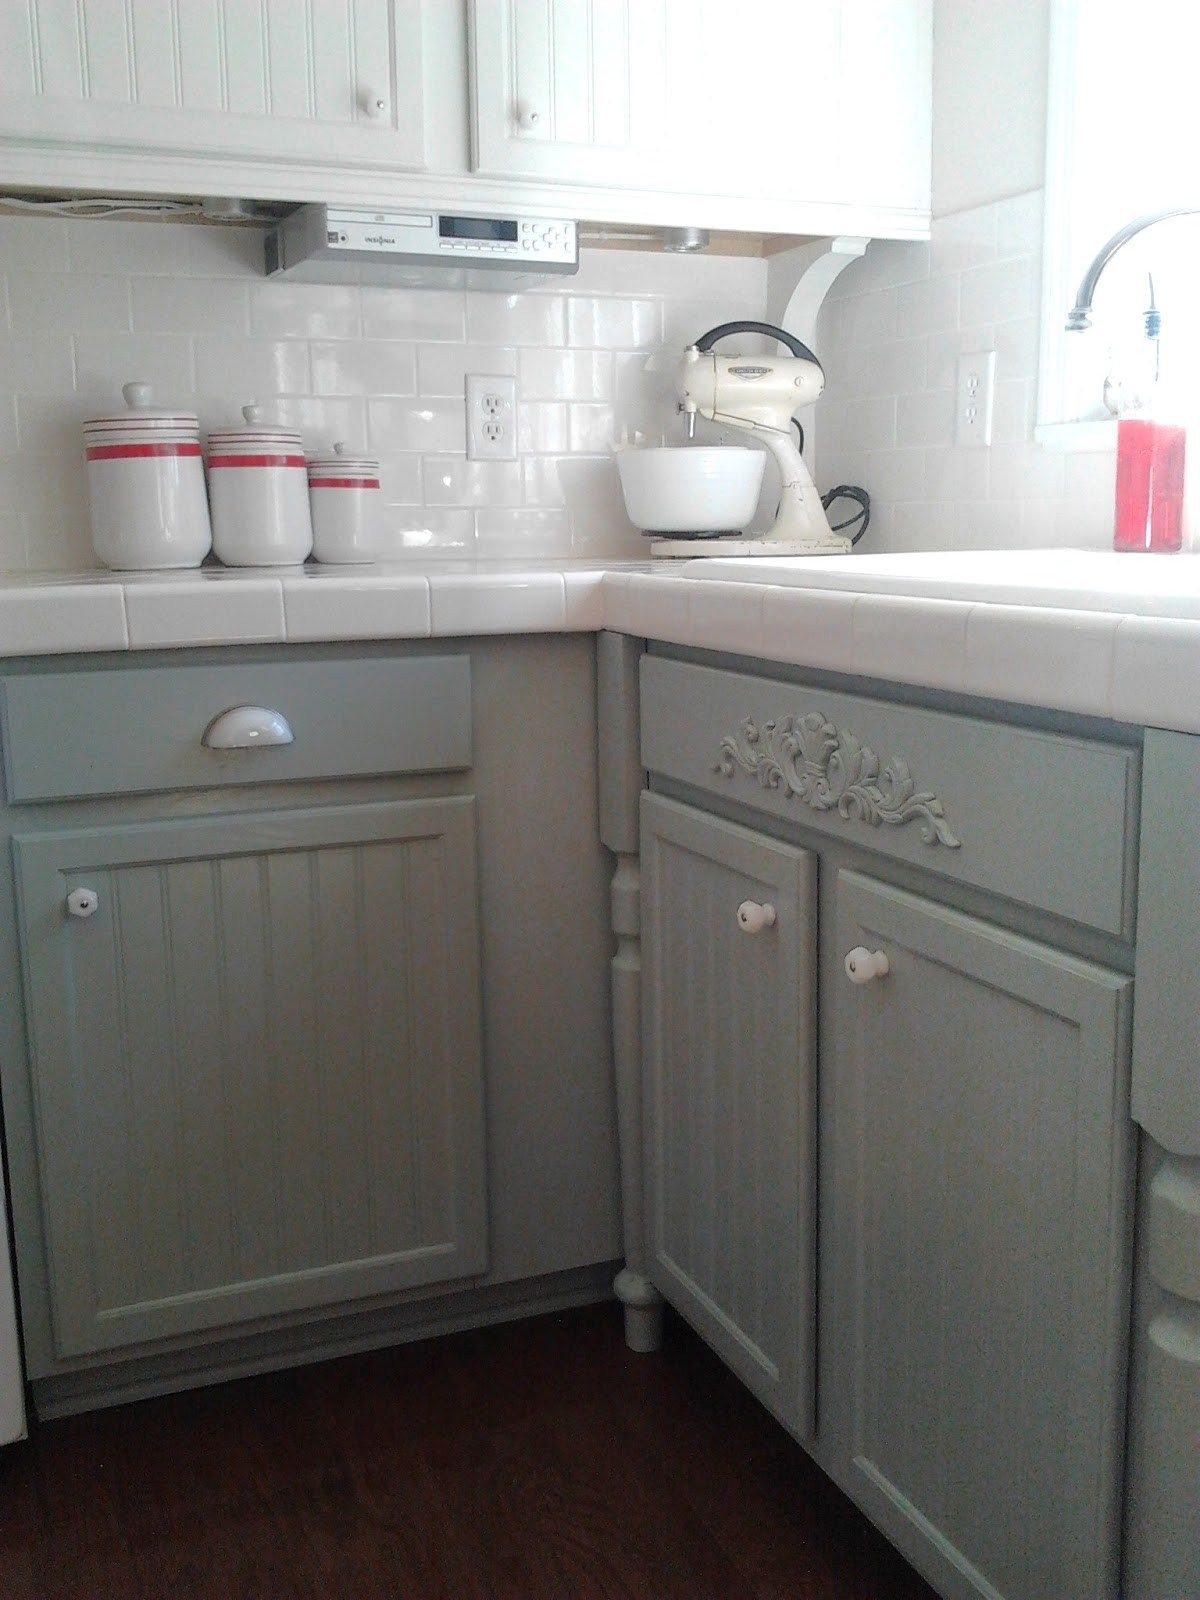 9 Kitchen Cabinet Update Oak To Gray Paint Silver Mink By Benjamin Moore Milk Gla Kitchen Cabinets Painted Grey White Kitchen Makeover Painting Oak Cabinets